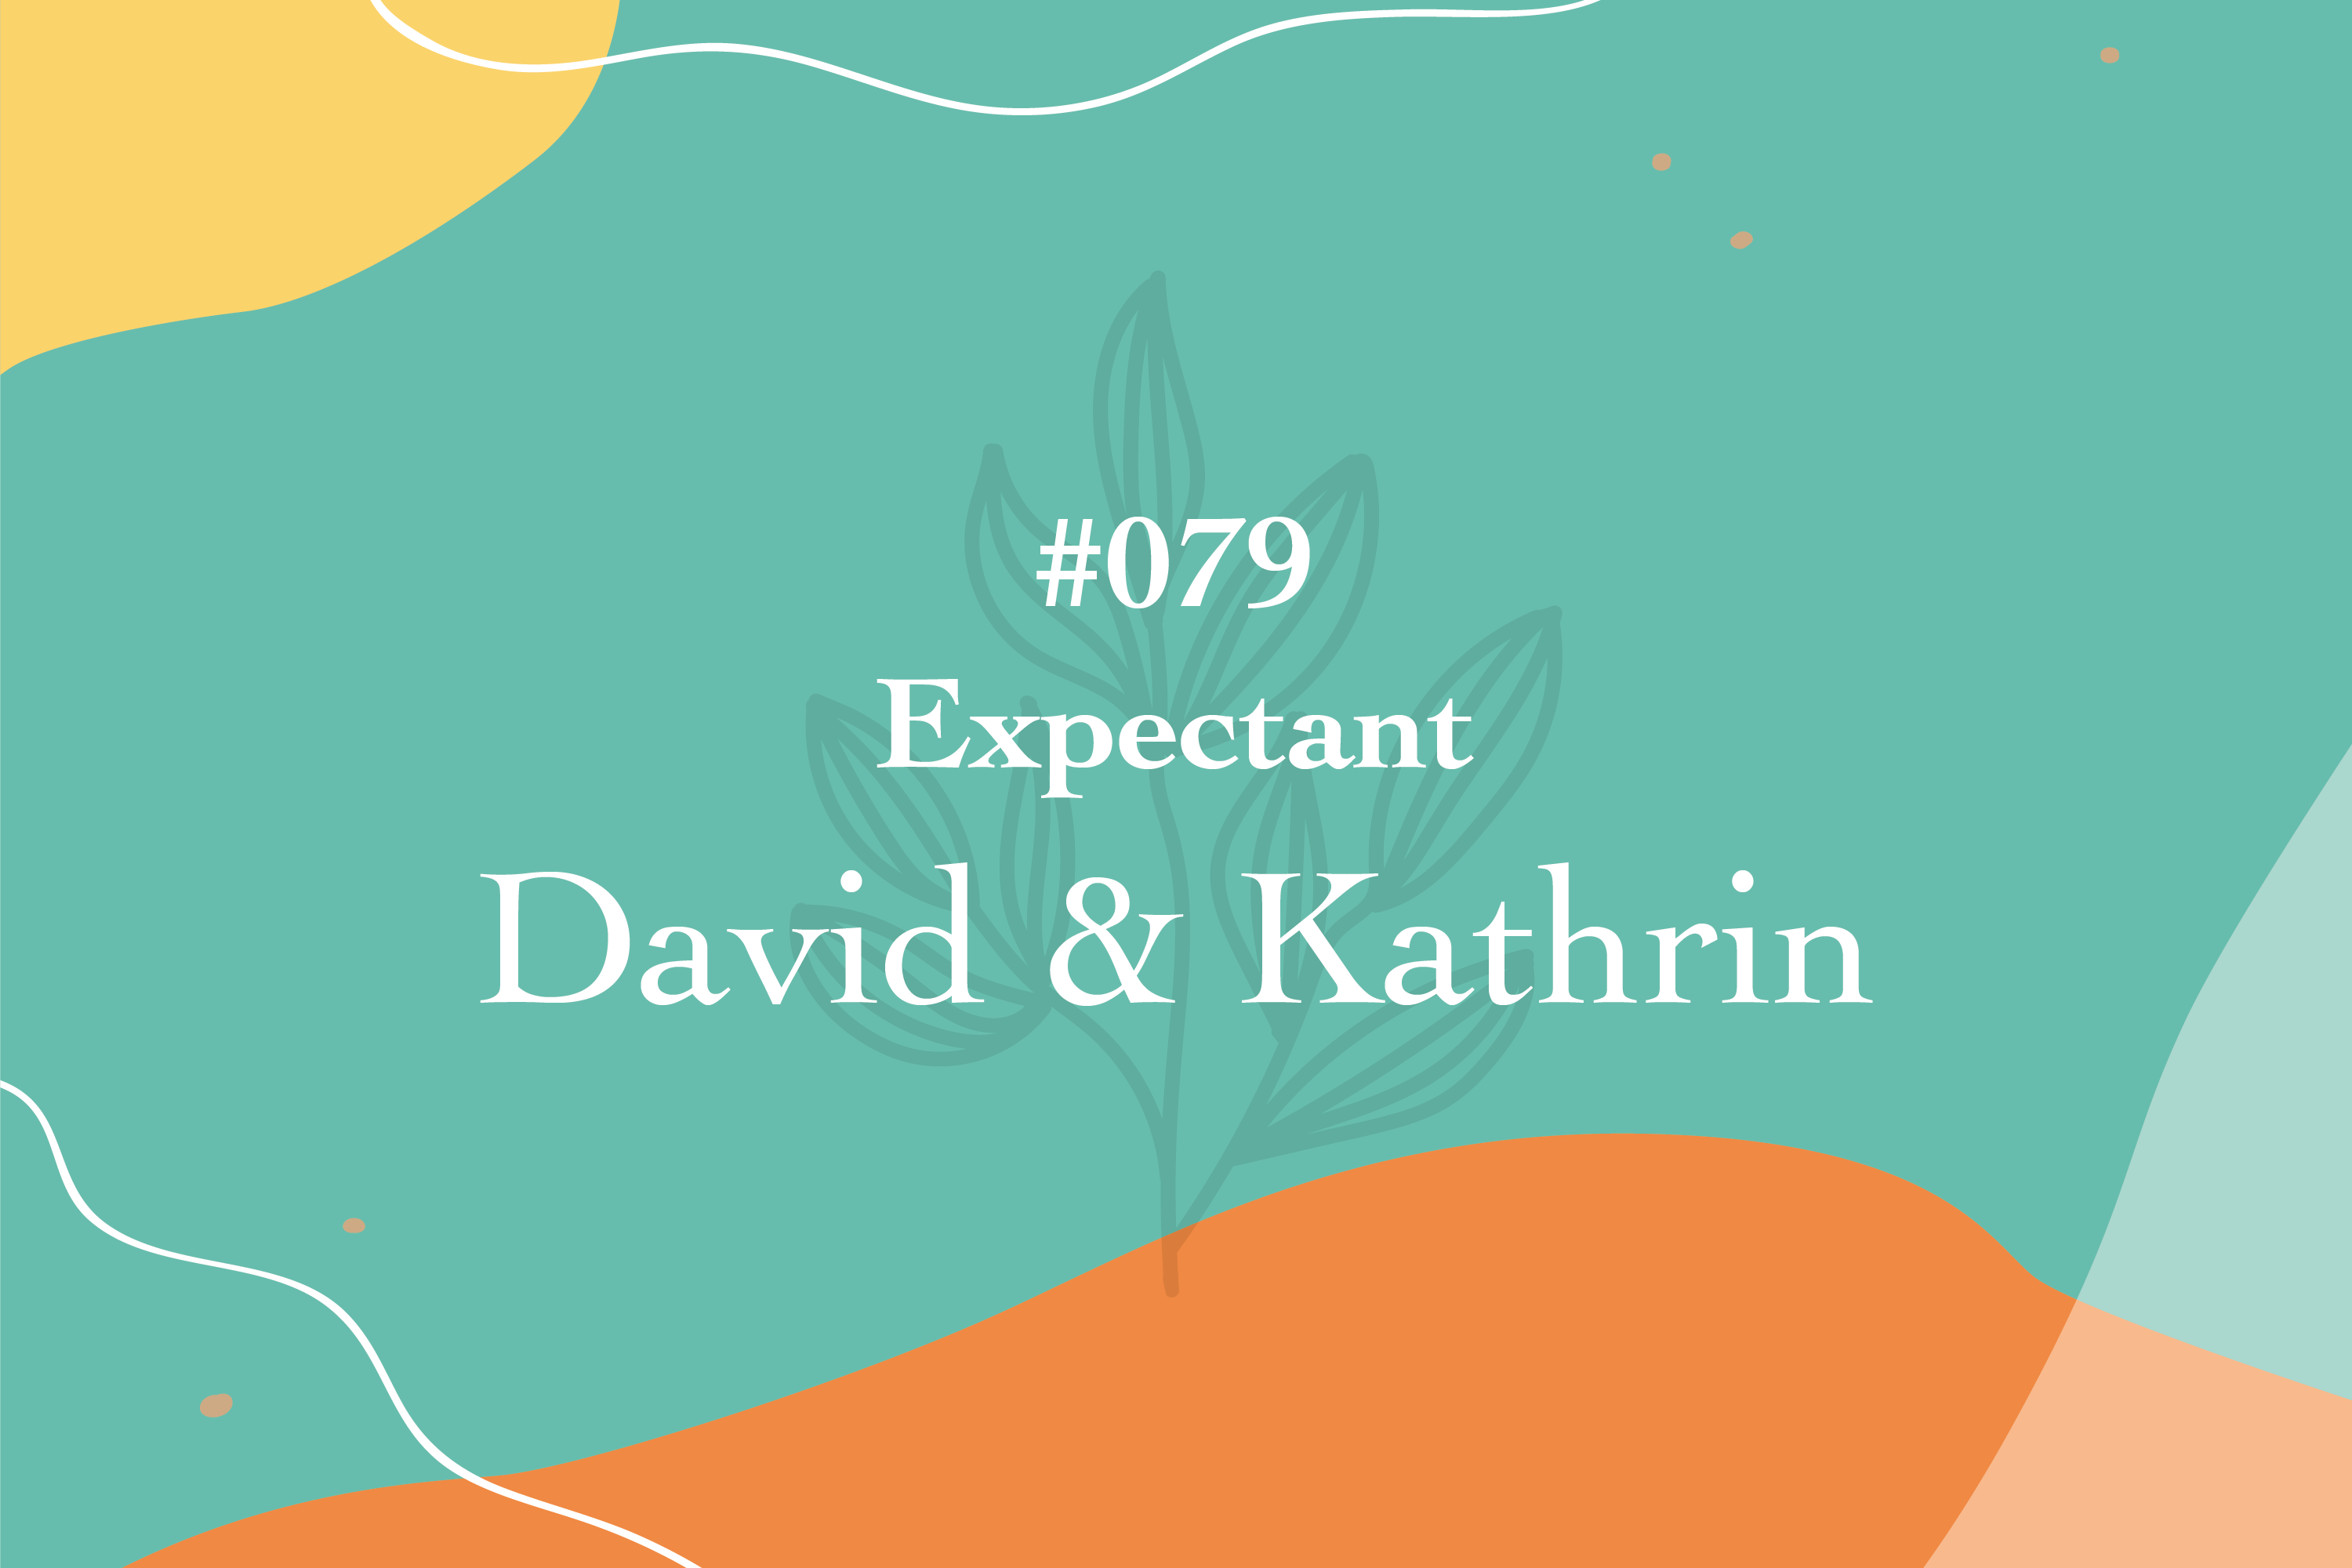 #079 Expectant: David & Kathrin